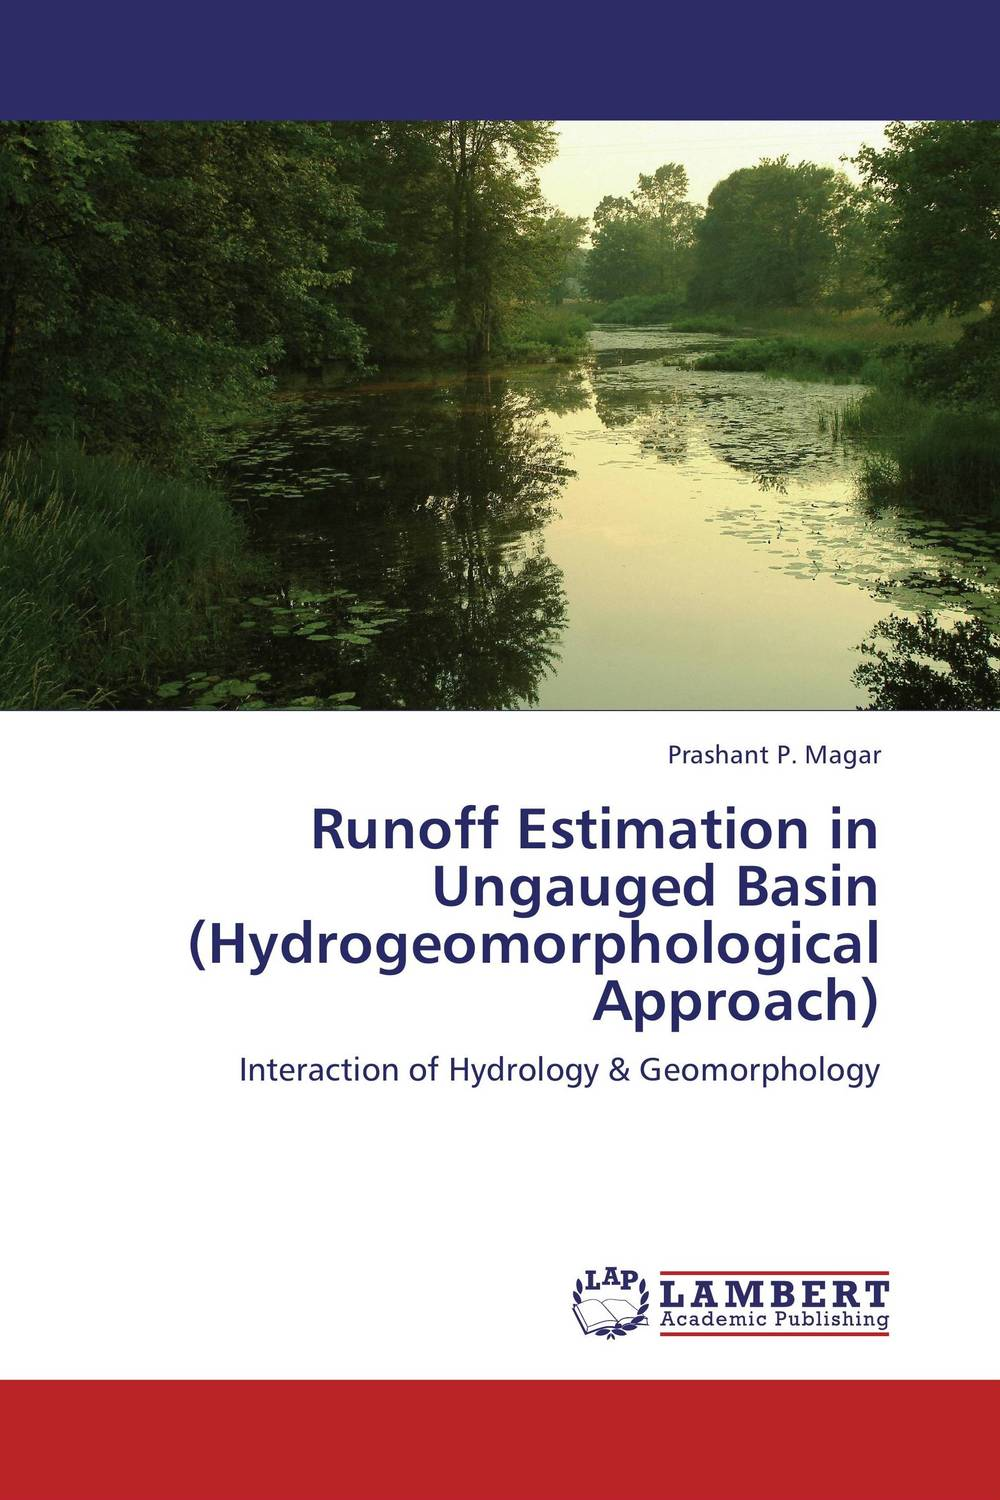 Runoff Estimation in Ungauged Basin (Hydrogeomorphological Approach) pastoralism and agriculture pennar basin india